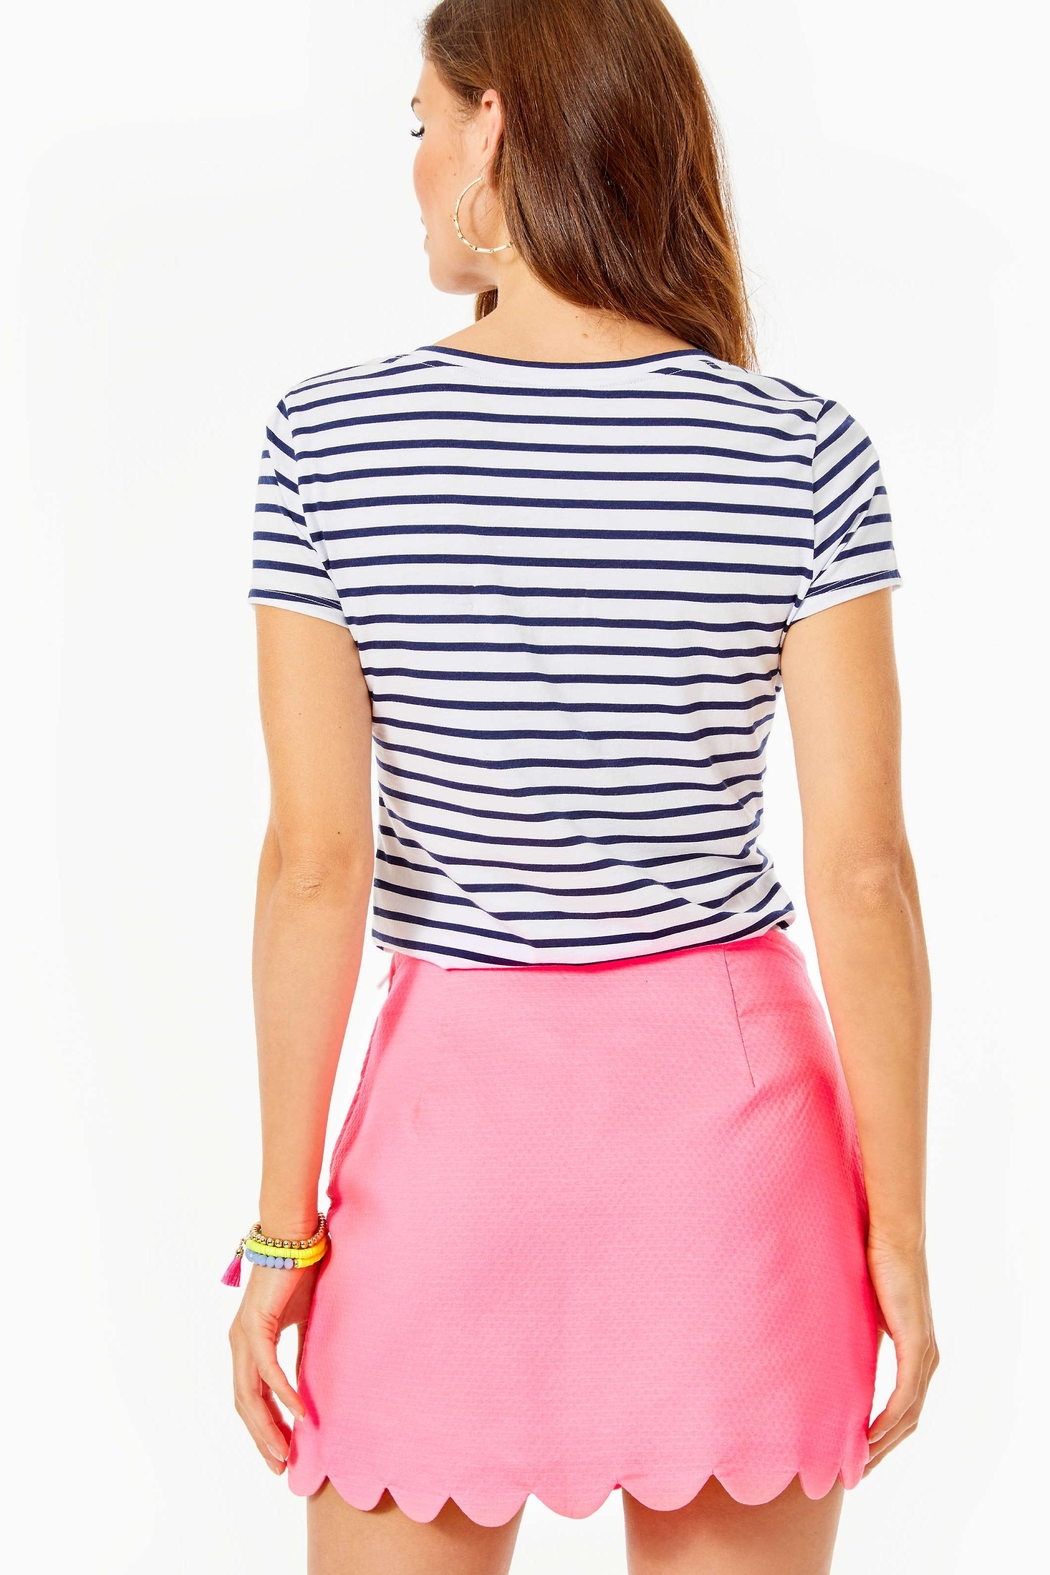 Lilly Pulitzer Kaylie Button-Down Skort - Front Full Image